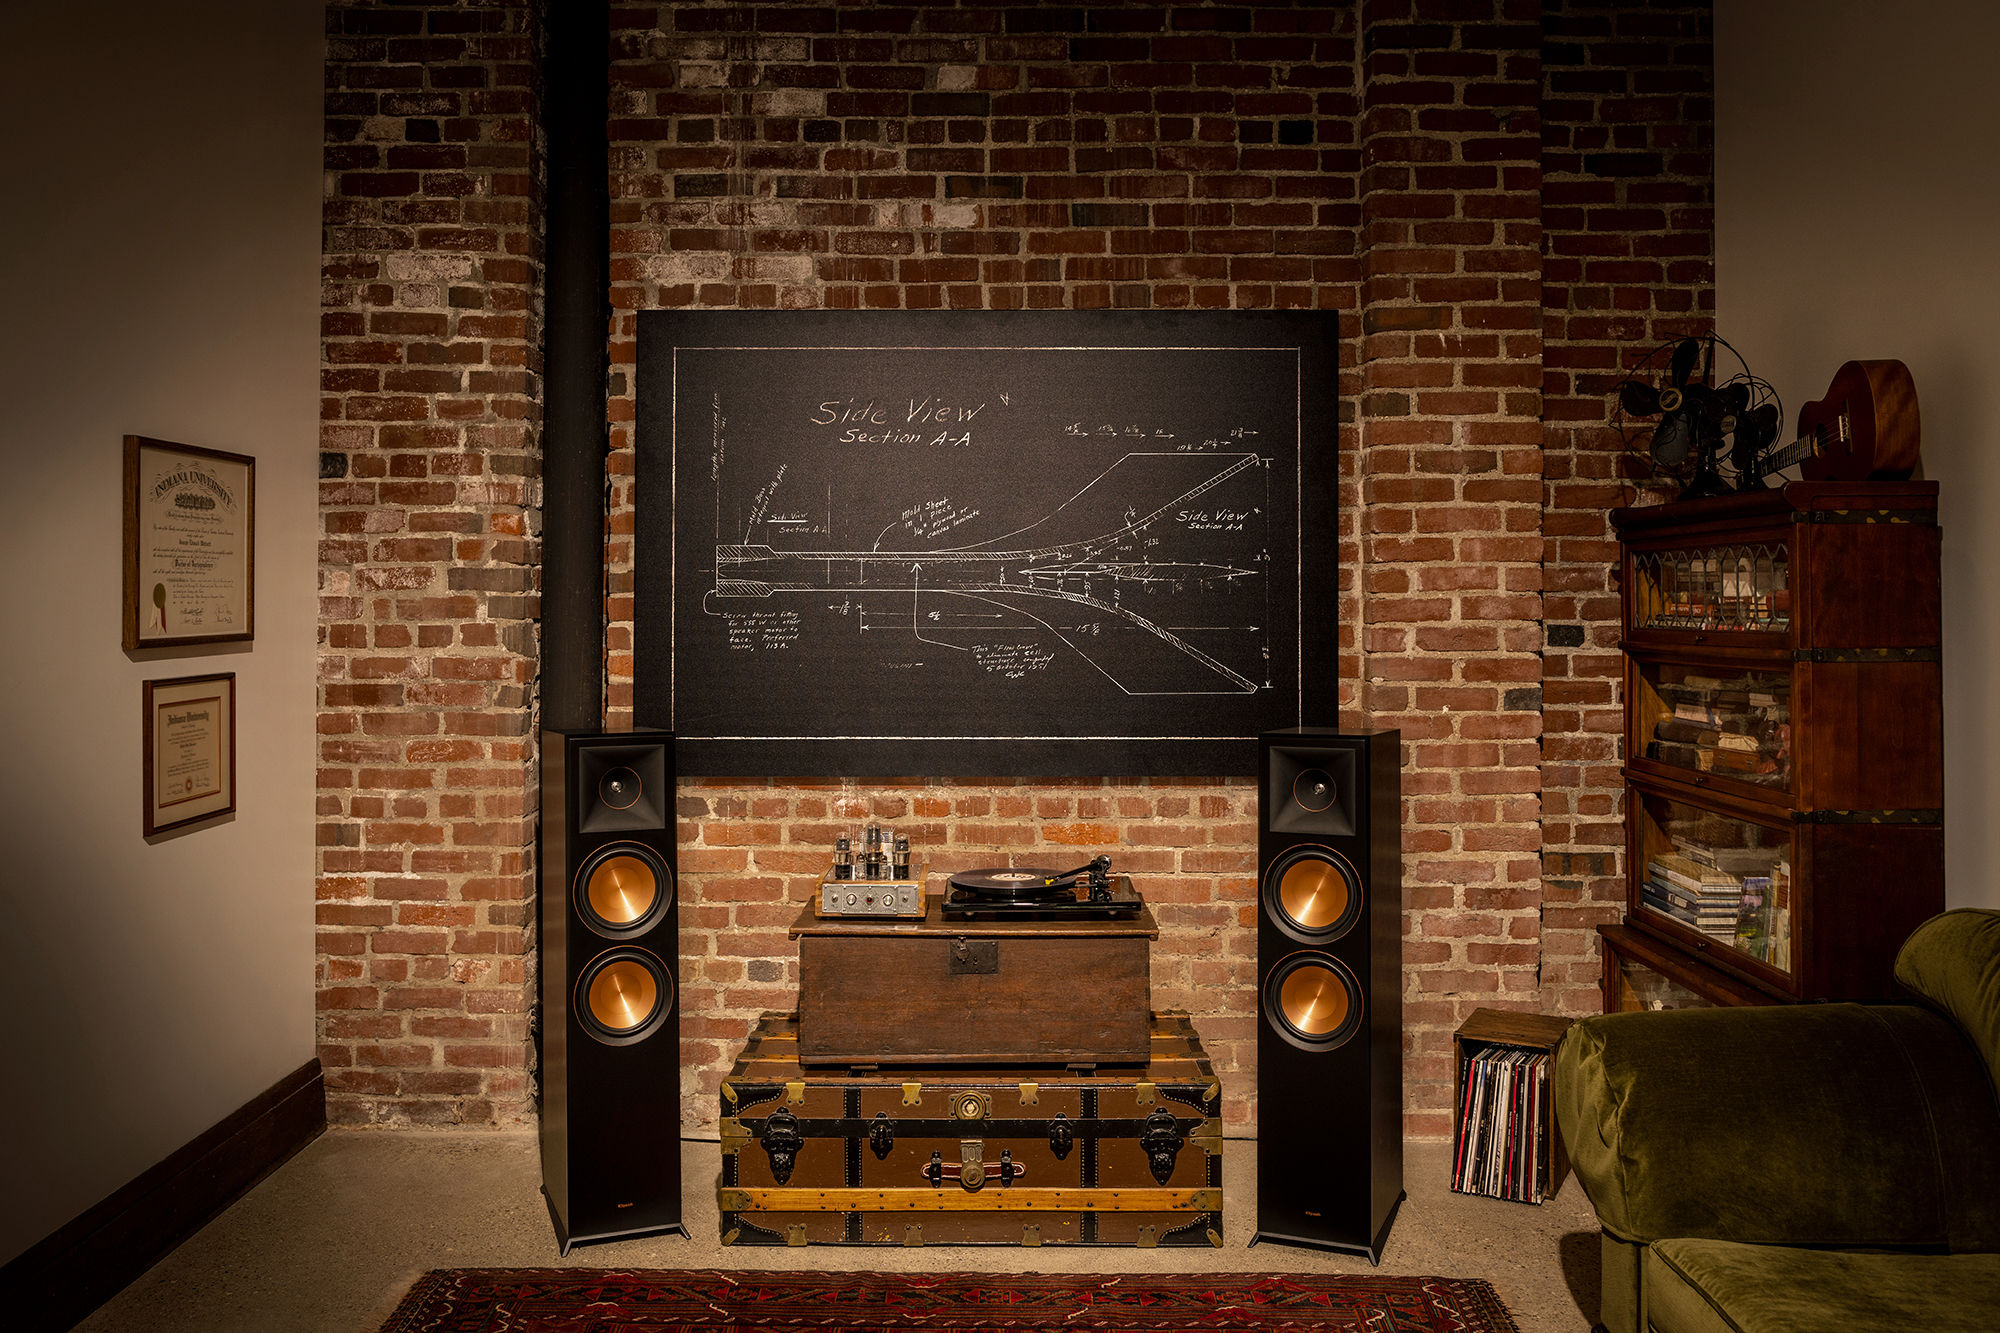 Klipsch speakers near a couch and blueprint on a wall